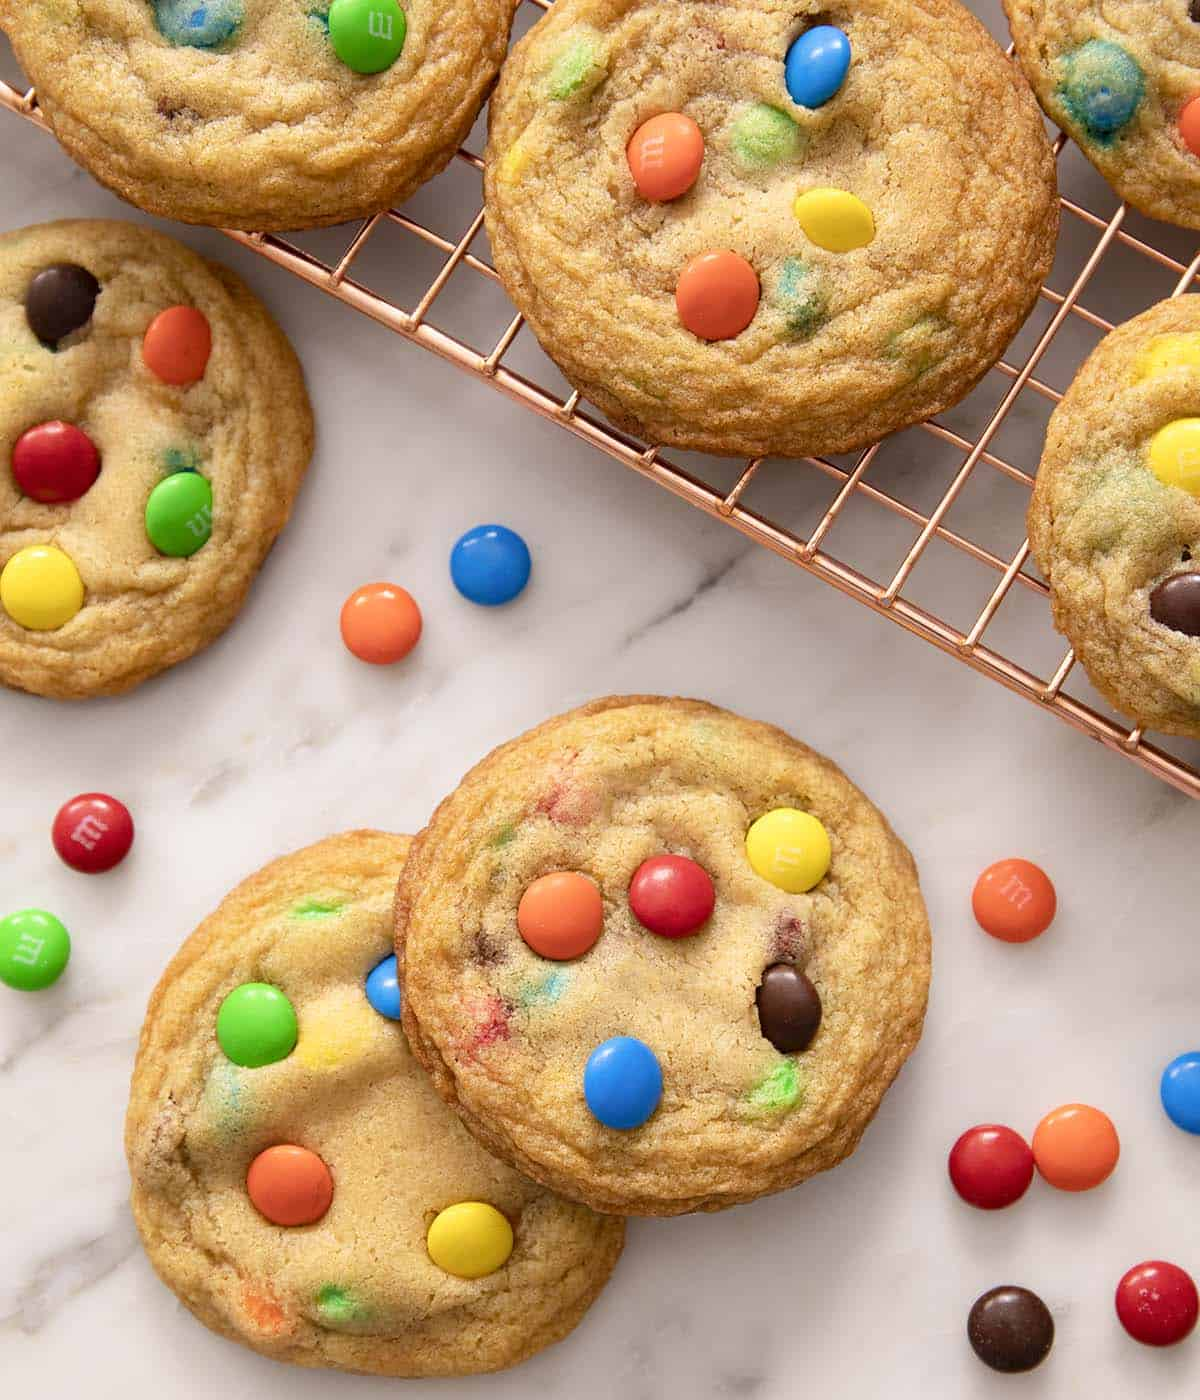 M&M cookies on a marble counter.